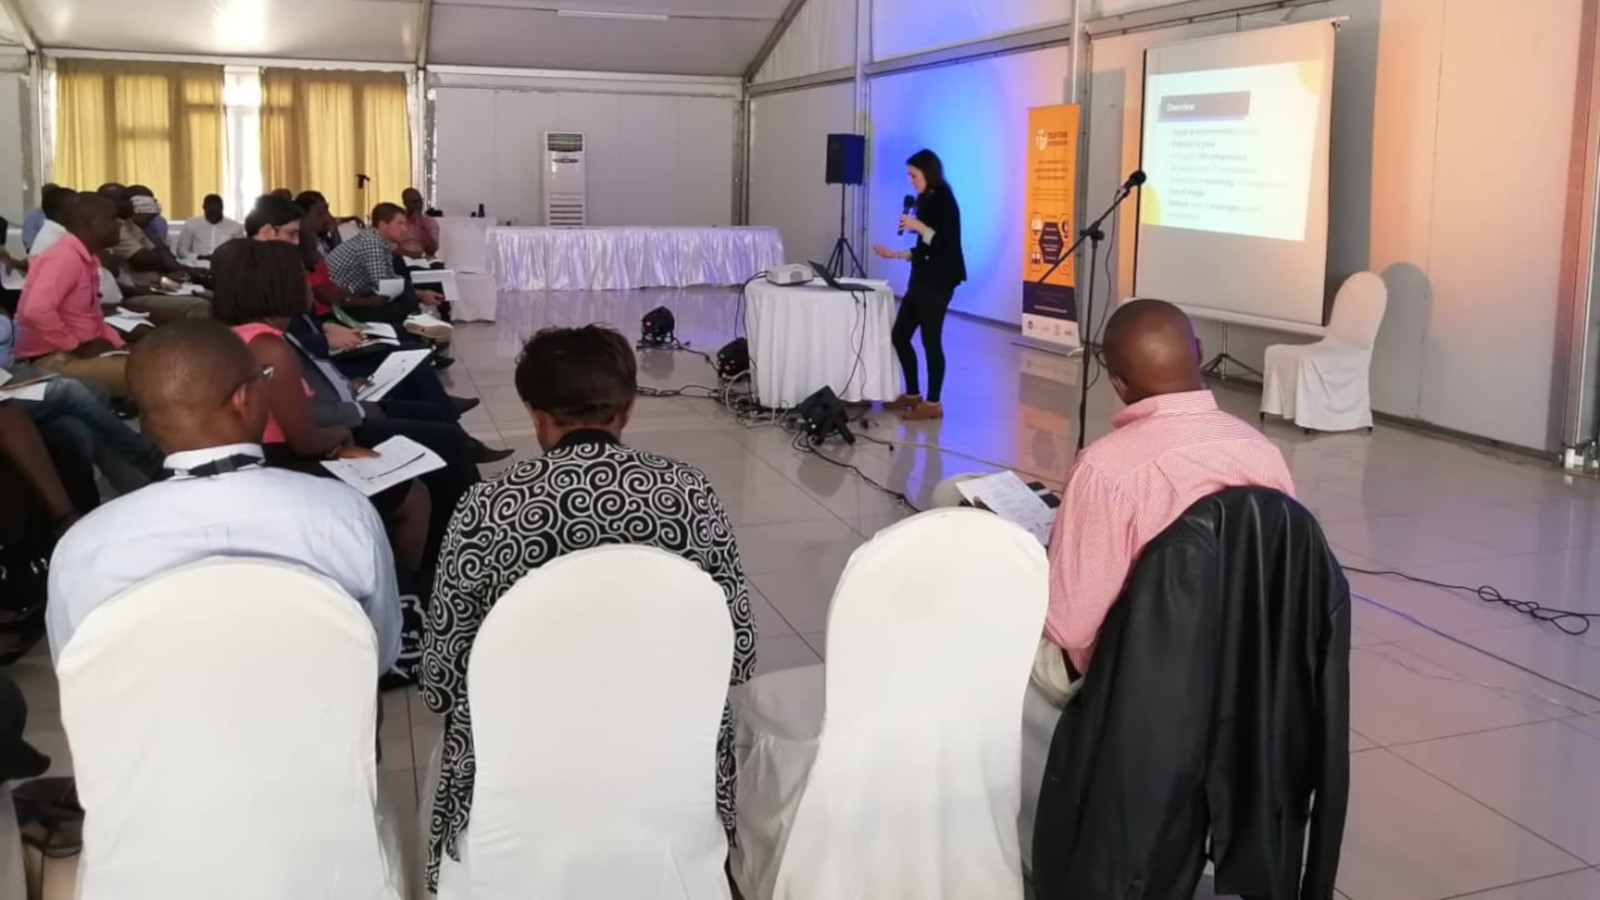 TechTribe Accelerator to use roadshows to pick 100 startups from SADC region - Ventureburn